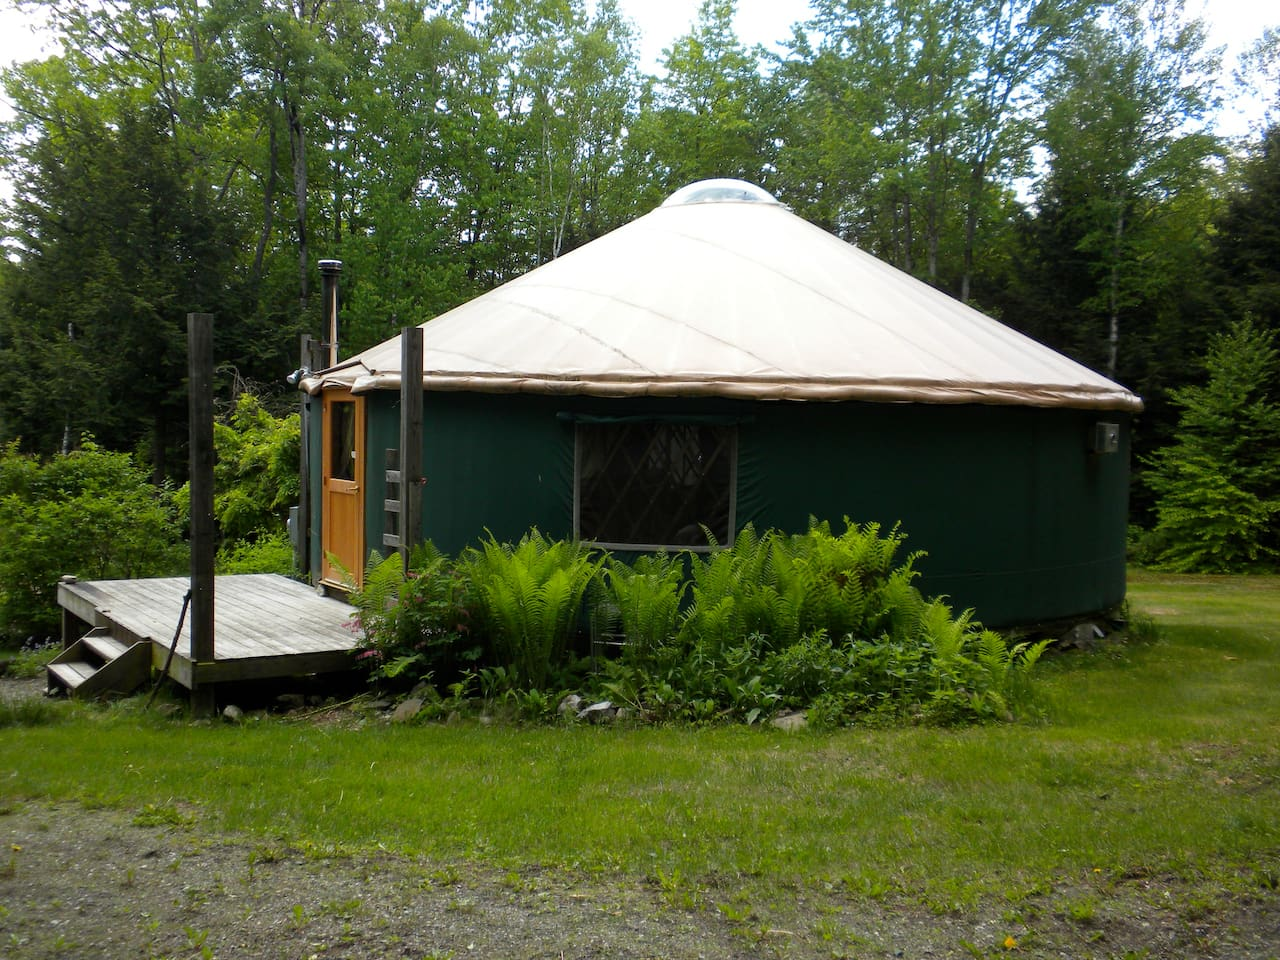 Yurt from Northeast side